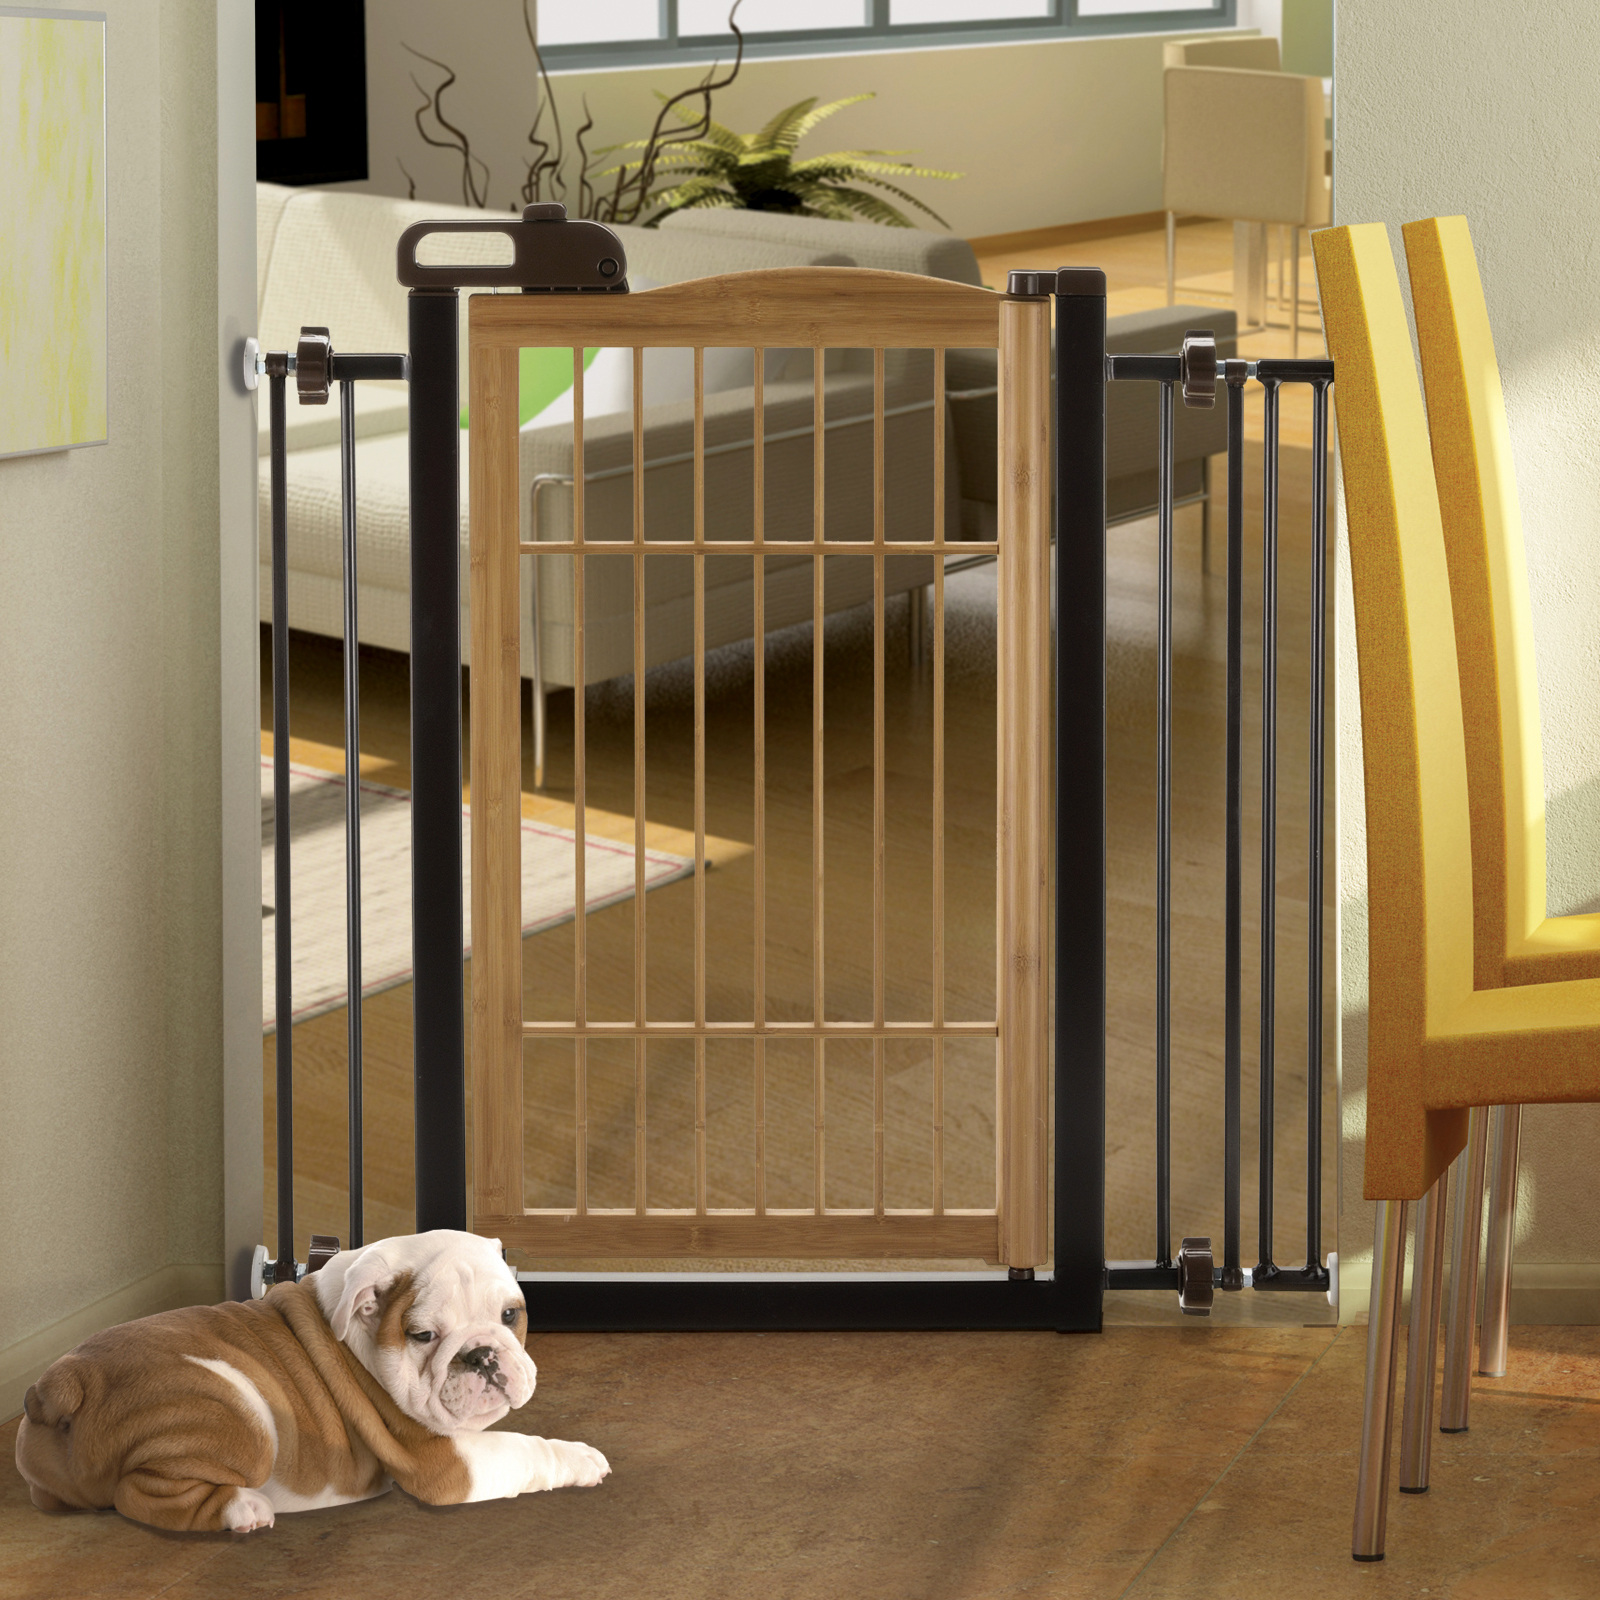 pin dog multi through doors stairs tall gate door extra use wide pet home walk pinterest dogs safety for child baby gates toddler thru